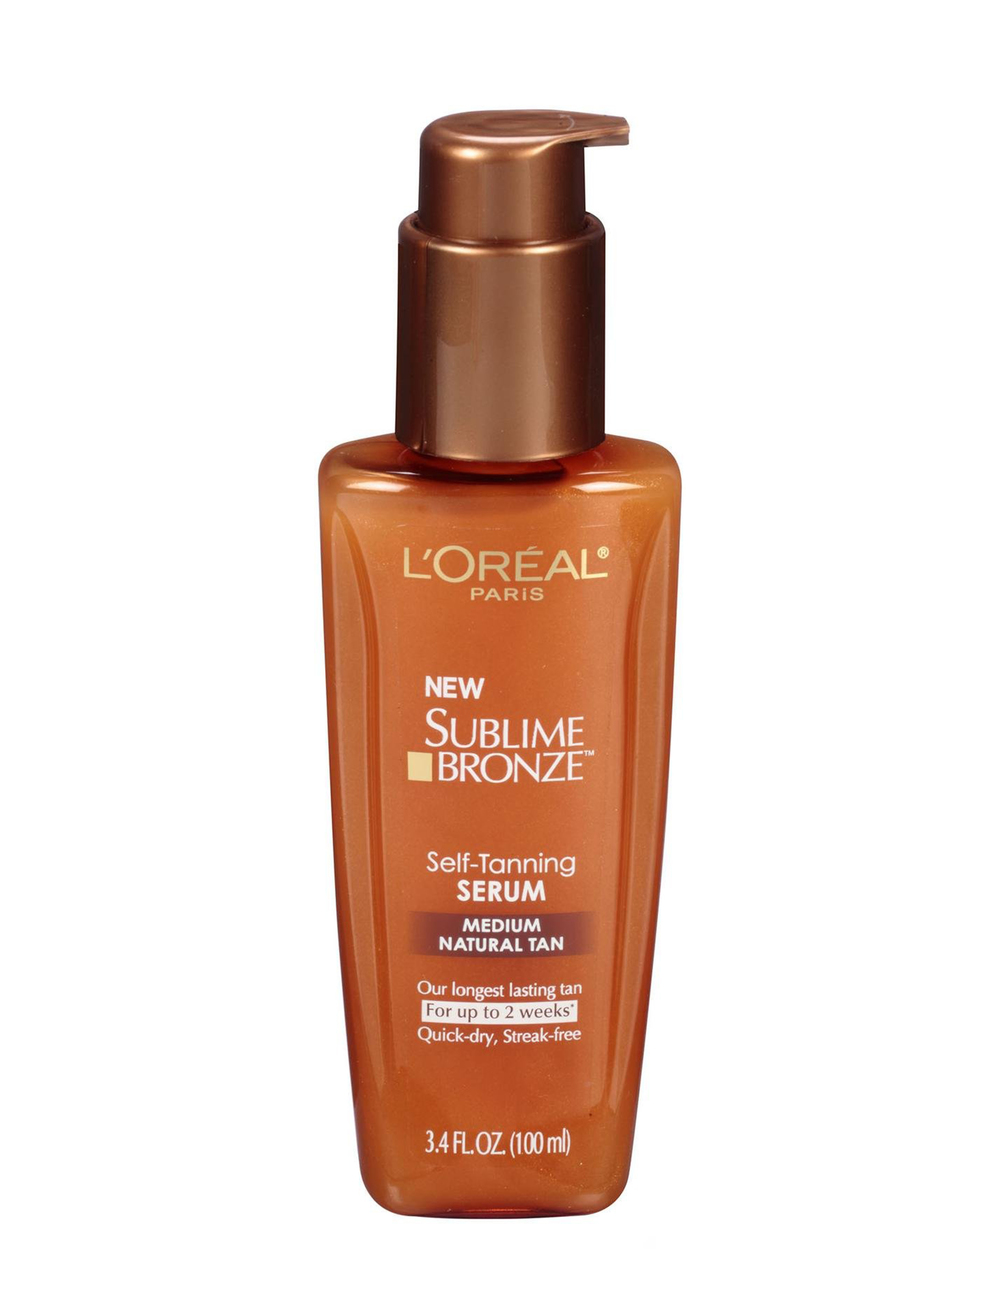 I add a few drops in my moisturizer and apply on arms and legs! Adding a bronzing serum to a lotion helps ensure no streaking or missed spots. Best drugstore find ever! L'Oreal Sublime Tanning Serum